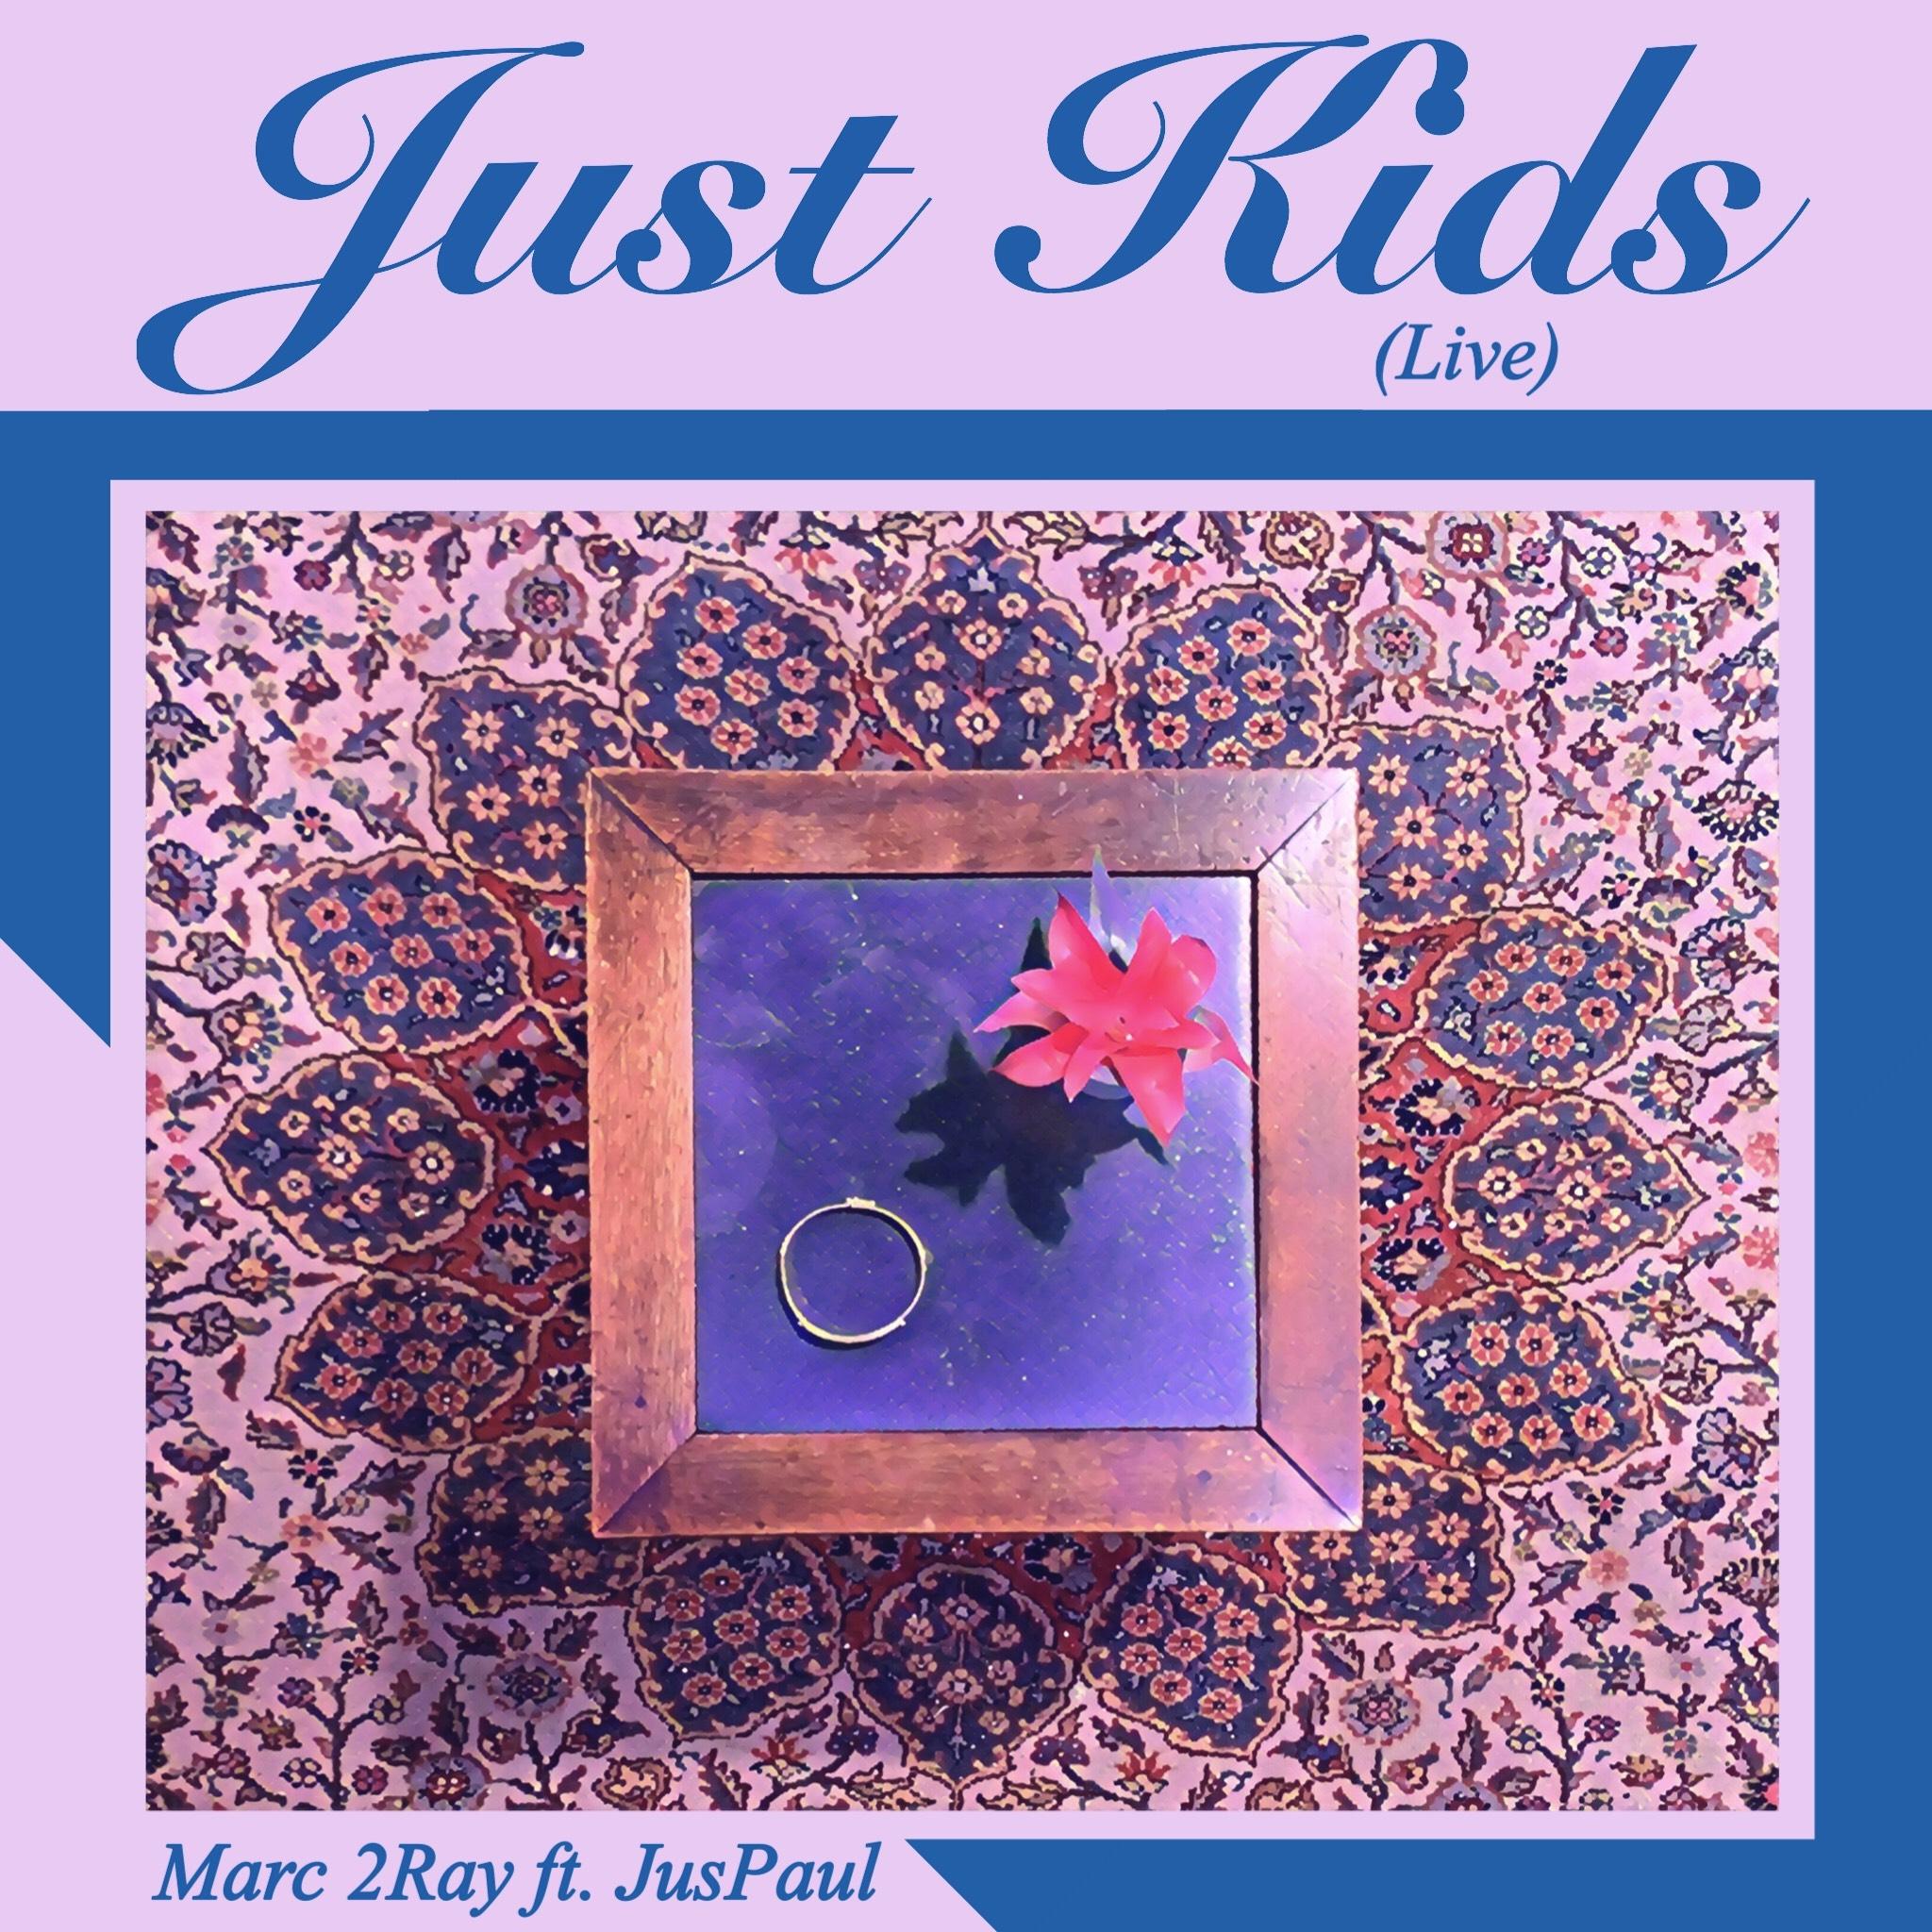 Just Kids (Live) cover art